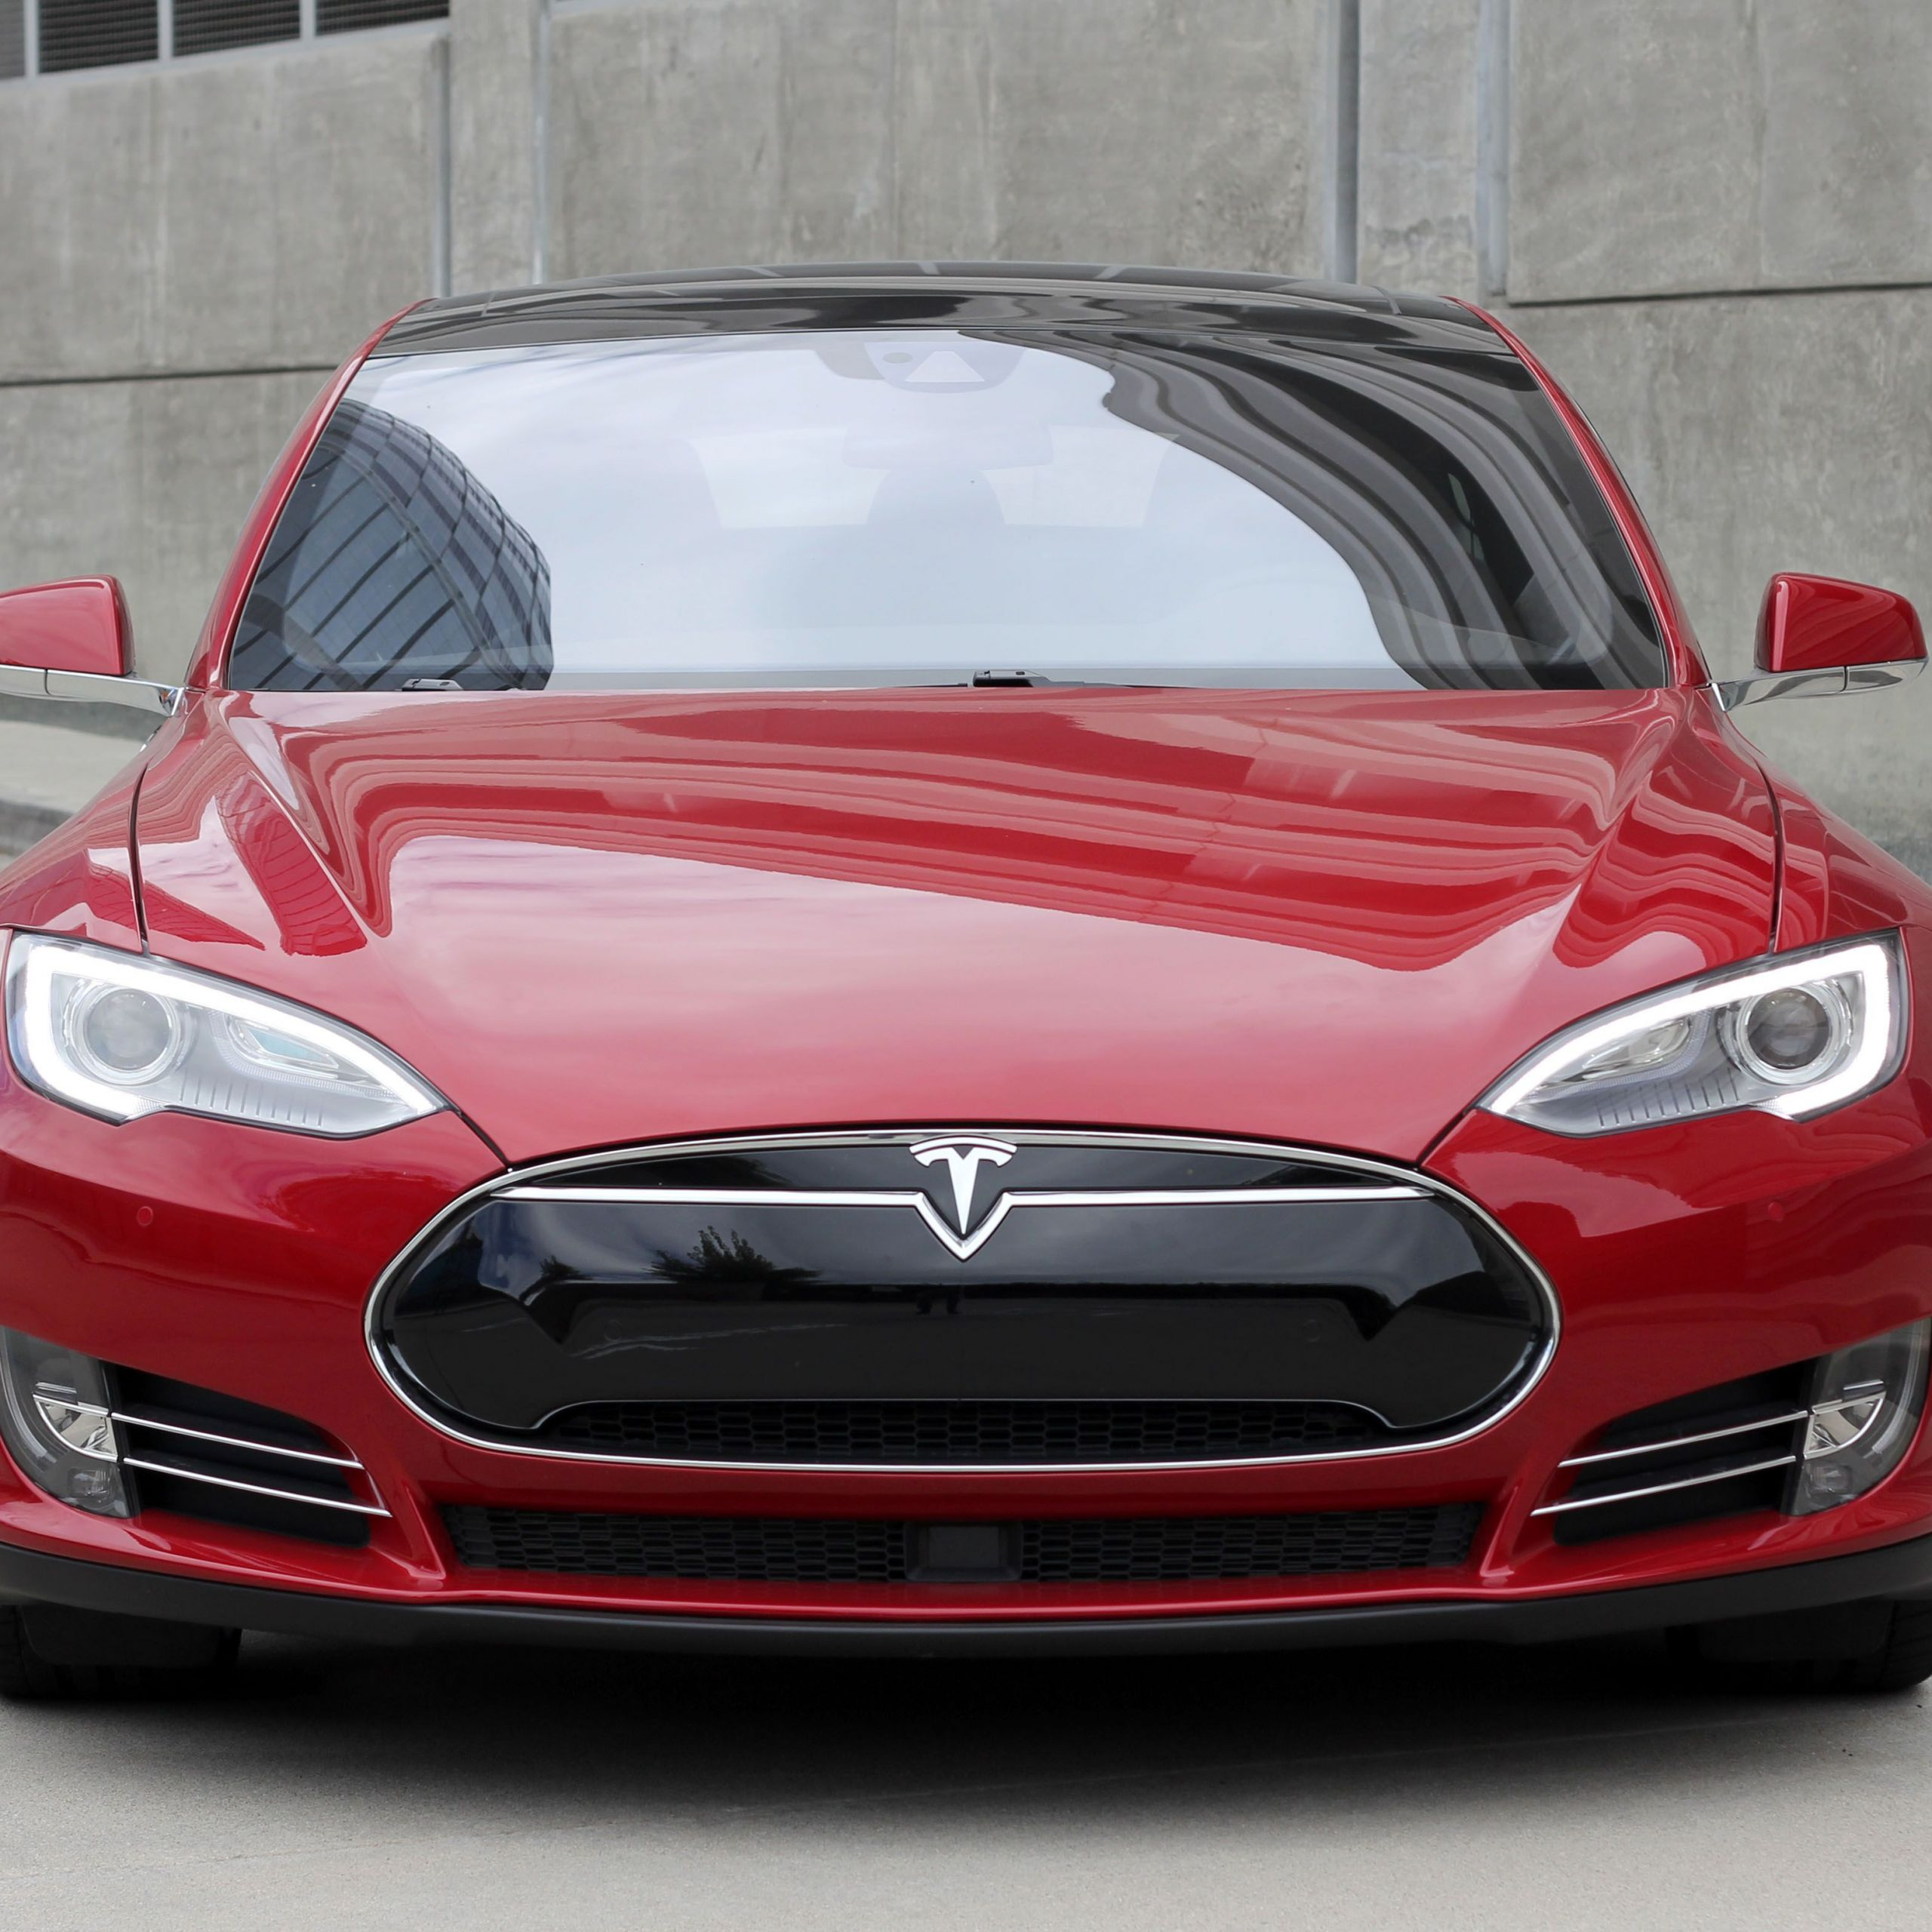 Tesla Ownership Luxury Introducing the All New Tesla Model S P90d with Ludicrous